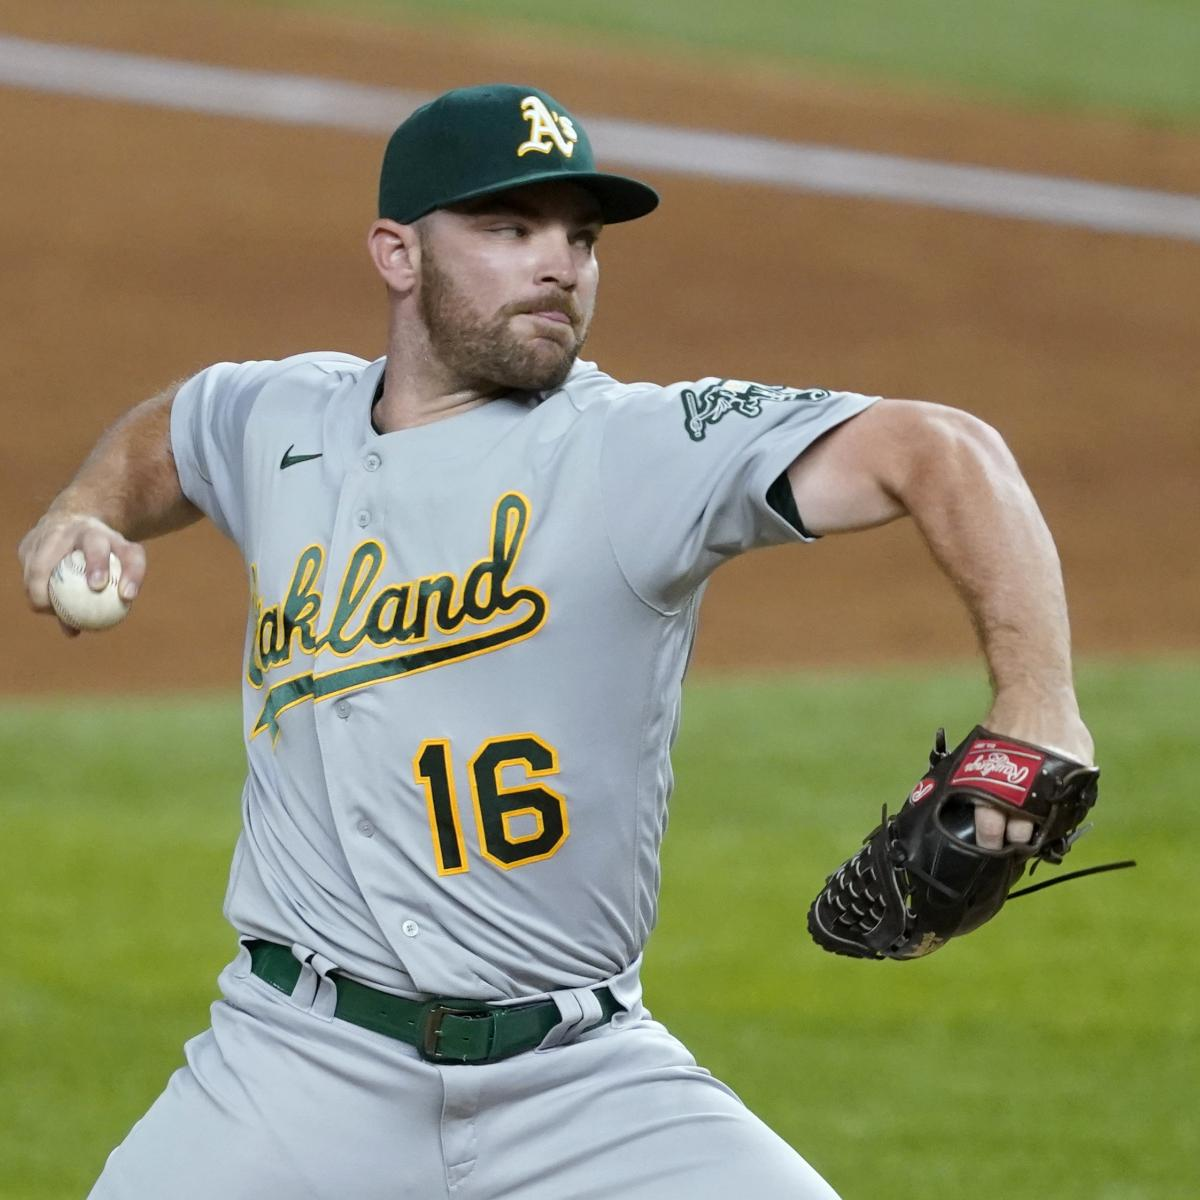 A's Liam Hendriks, Brewers' Devin Williams Named 2020 MLB Relievers of the Year